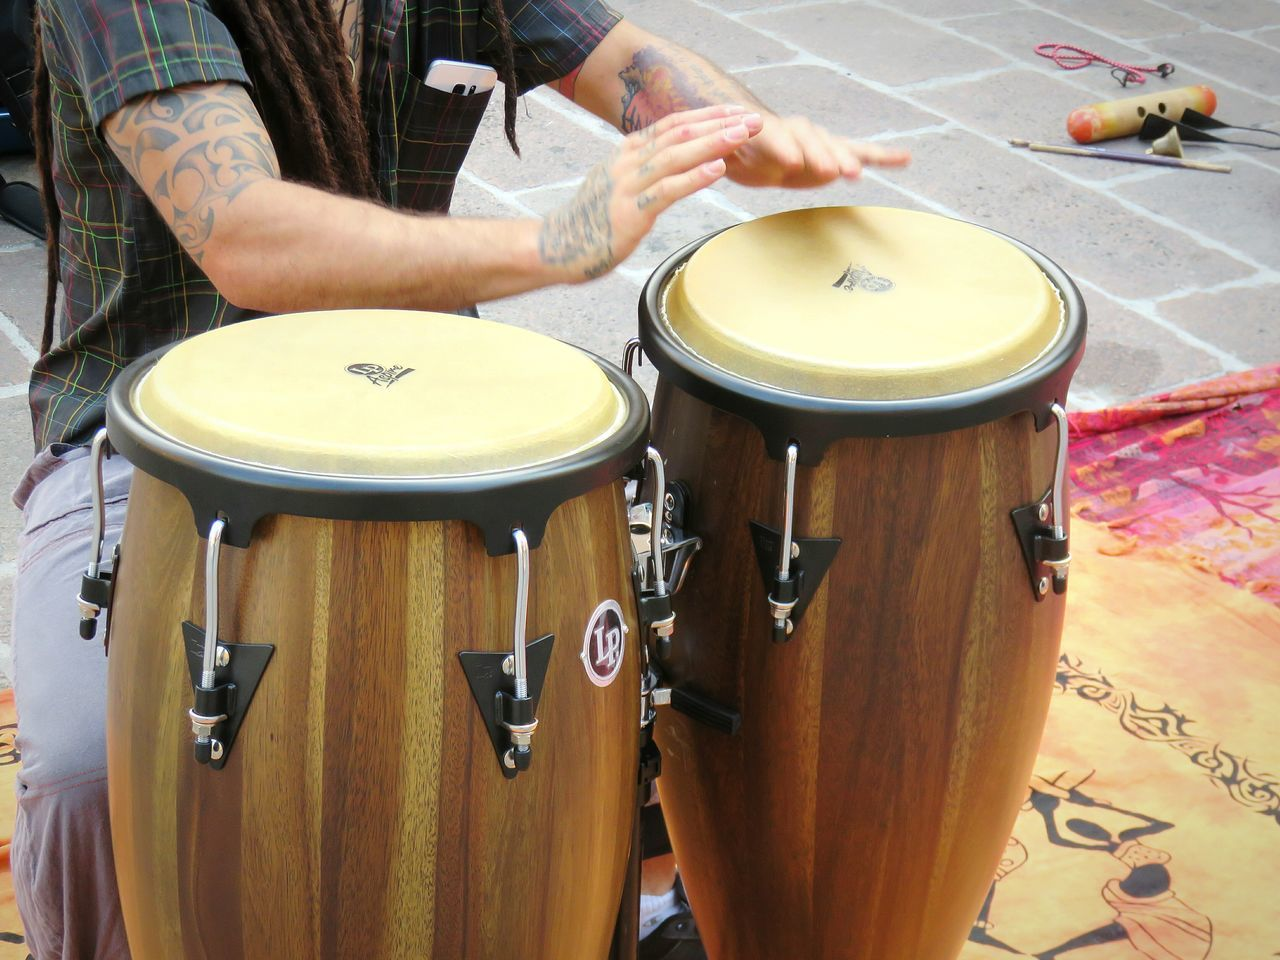 drum - percussion instrument, music, musical instrument, drumstick, drummer, arts culture and entertainment, real people, playing, midsection, musician, human hand, sitting, indoors, men, day